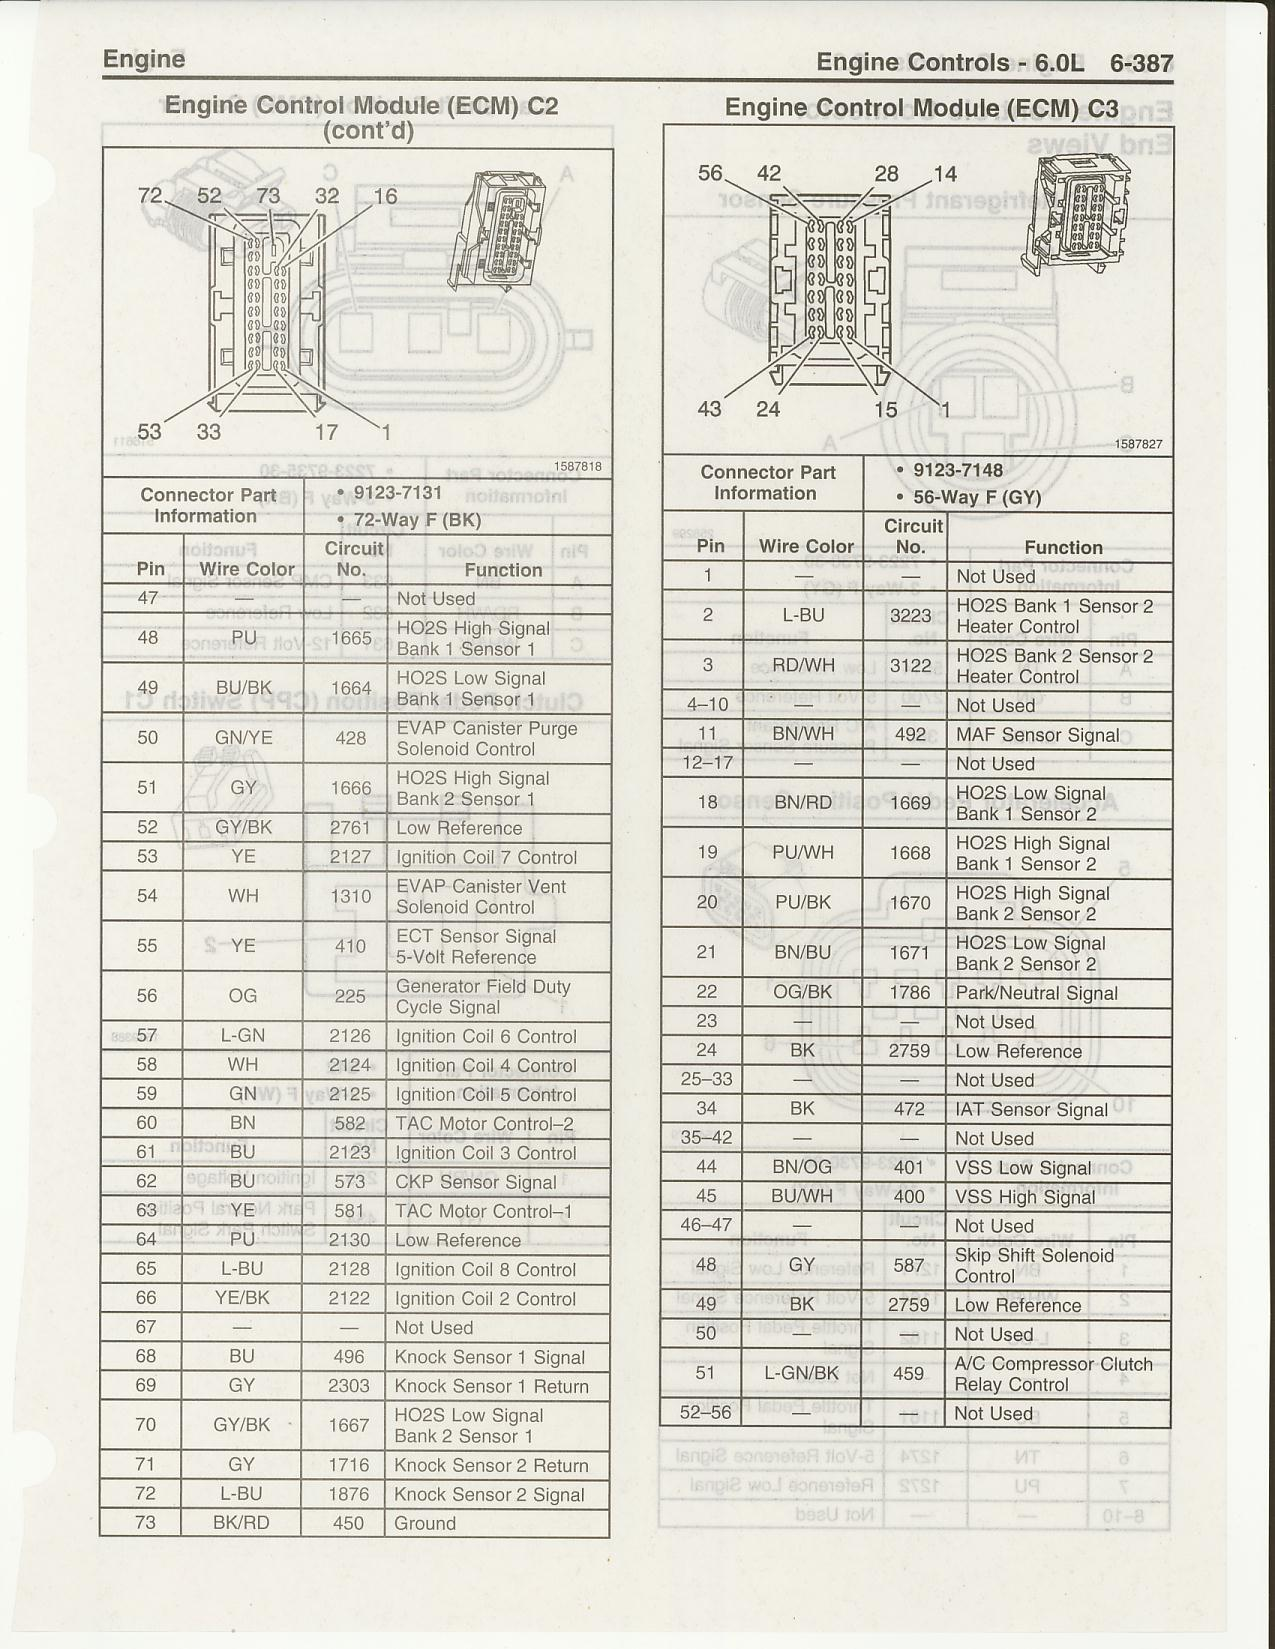 Gm Ecm Wiring Diagram Schemes 91 Honda Spark Plug Pinouts And Diagrams Page 4 Ls1tech Camaro Firebird 1988